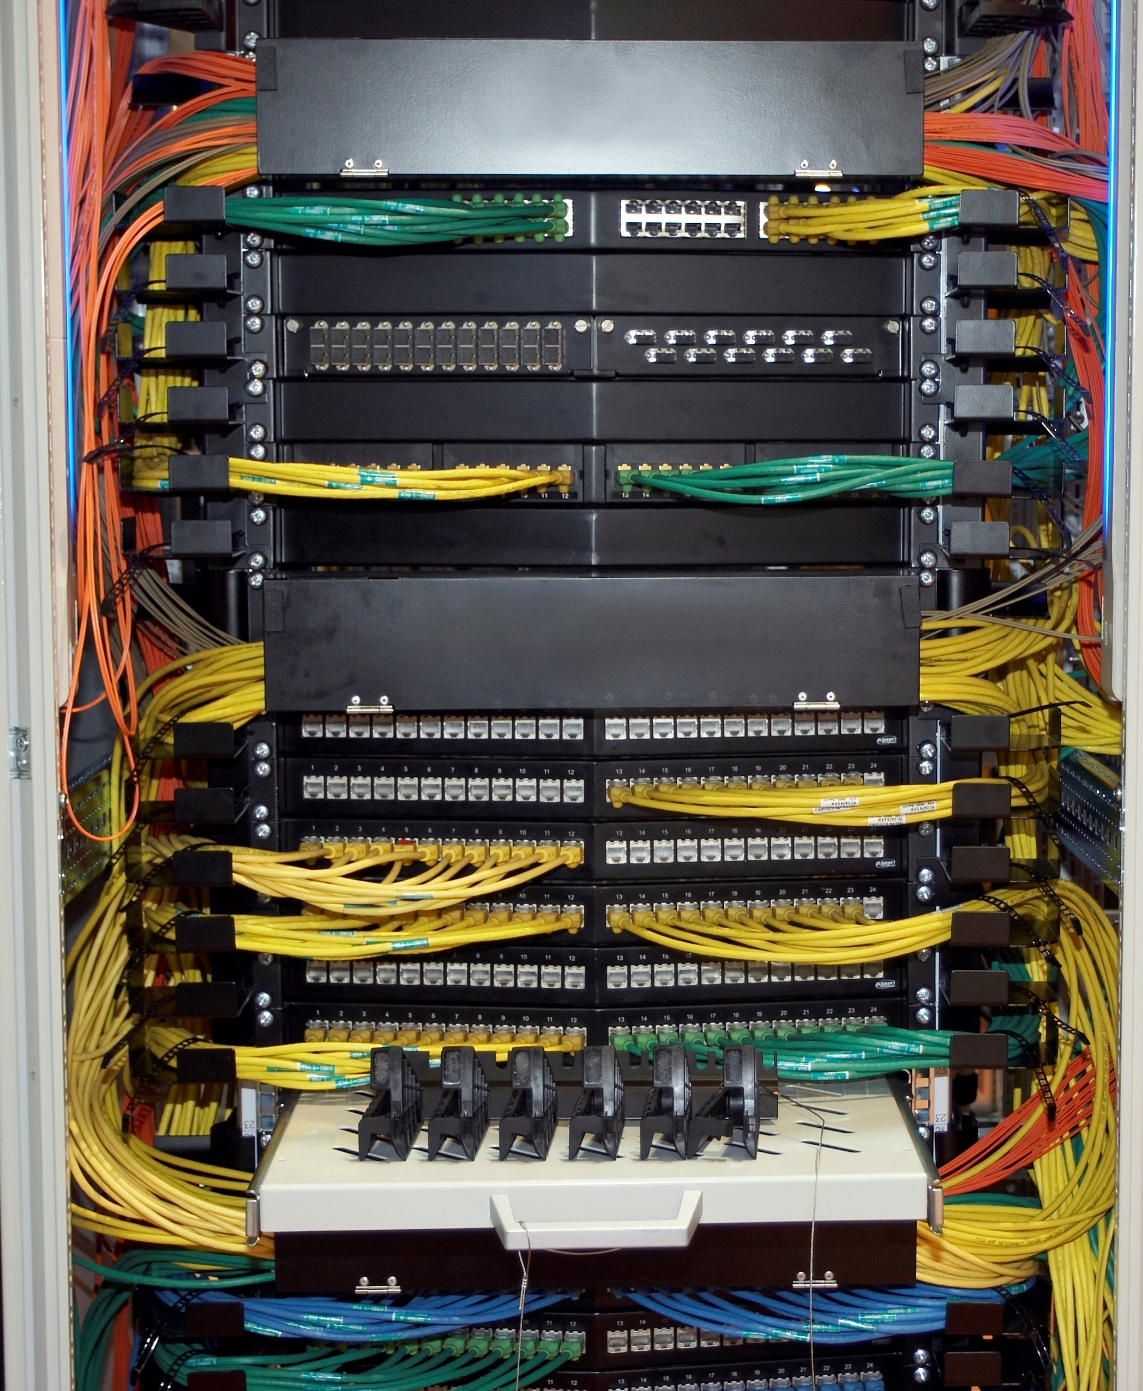 Vdi Communications Inc Structured Cabling Contact Us To Learn More About Our Wiring Services